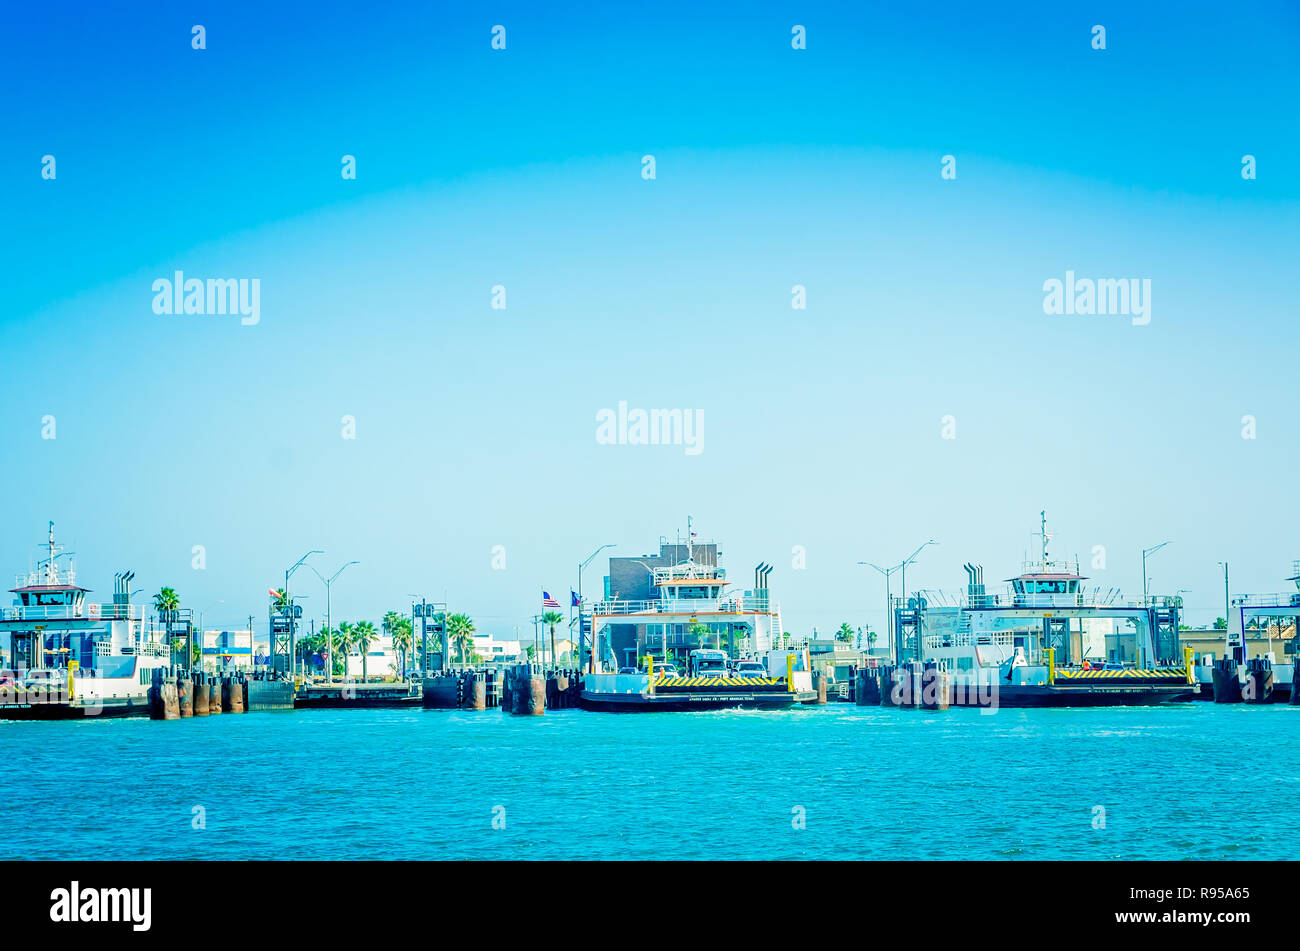 Ferries wait to take passengers from Port Aransas to Aransas Pass, Aug. 25, 2018, in Port Aransas, Texas. - Stock Image